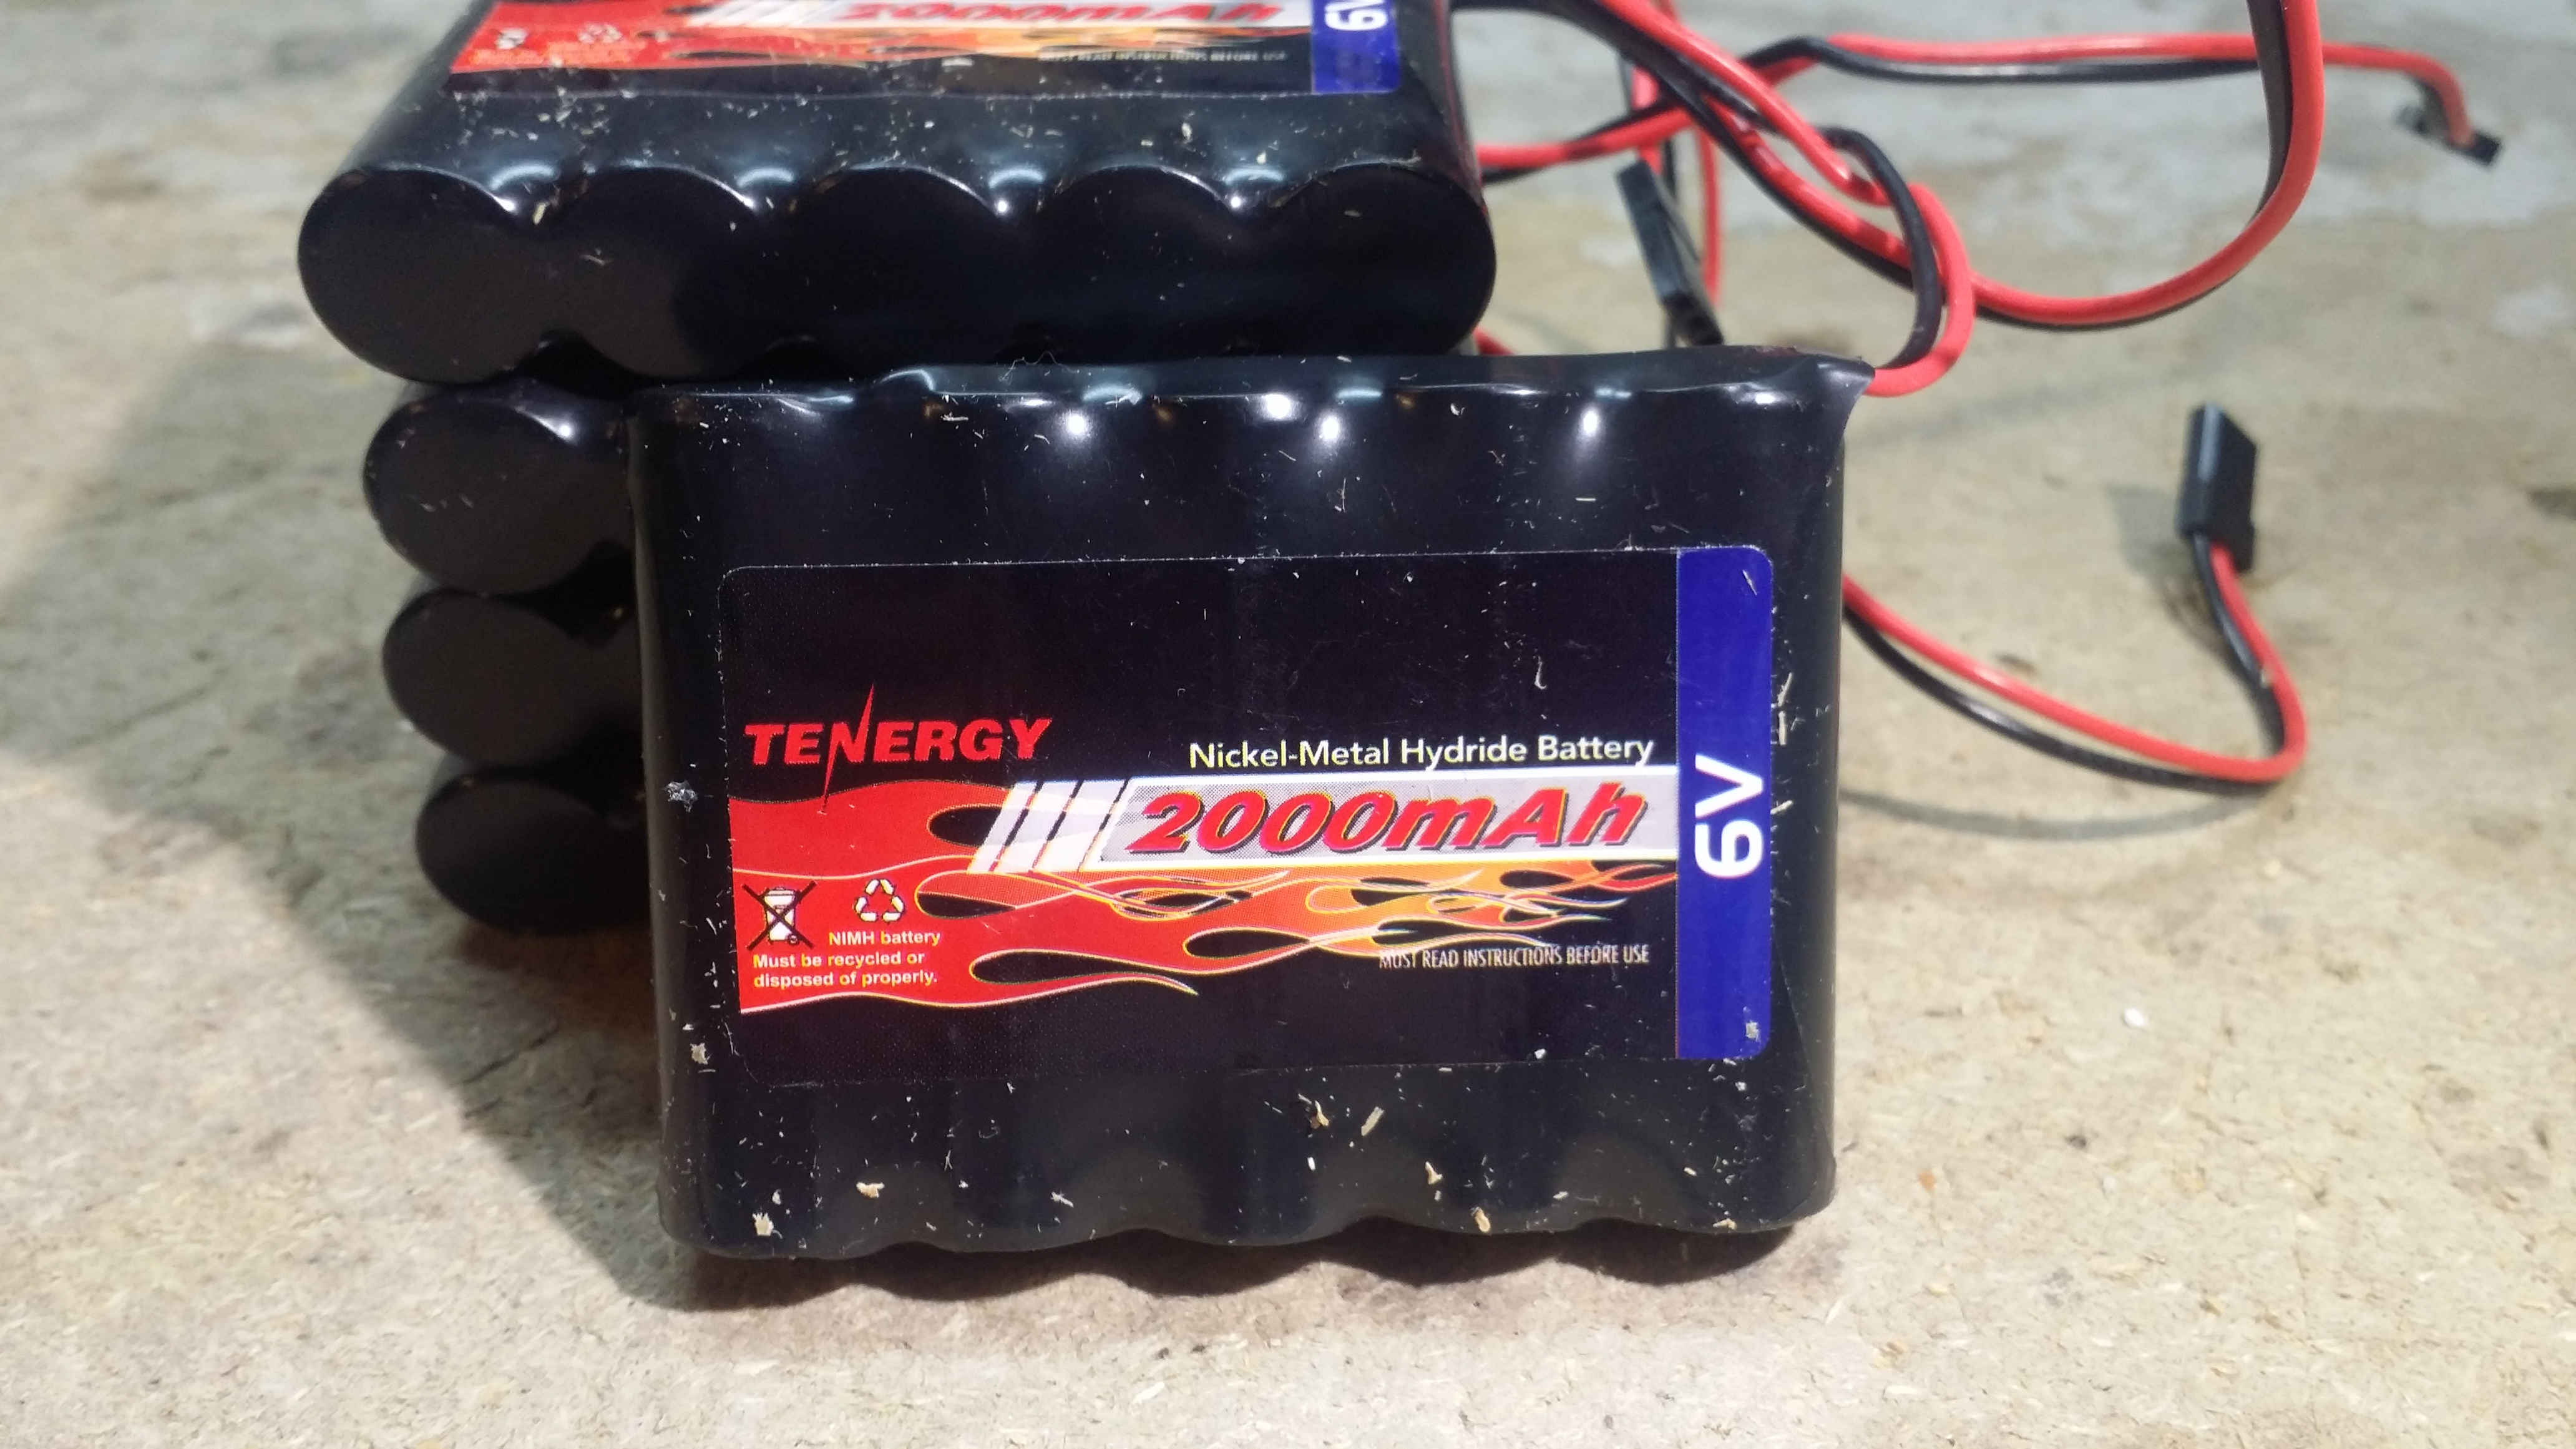 Click image for larger version  Name:batterys tenergy.jpg Views:49 Size:2.47 MB ID:2201672